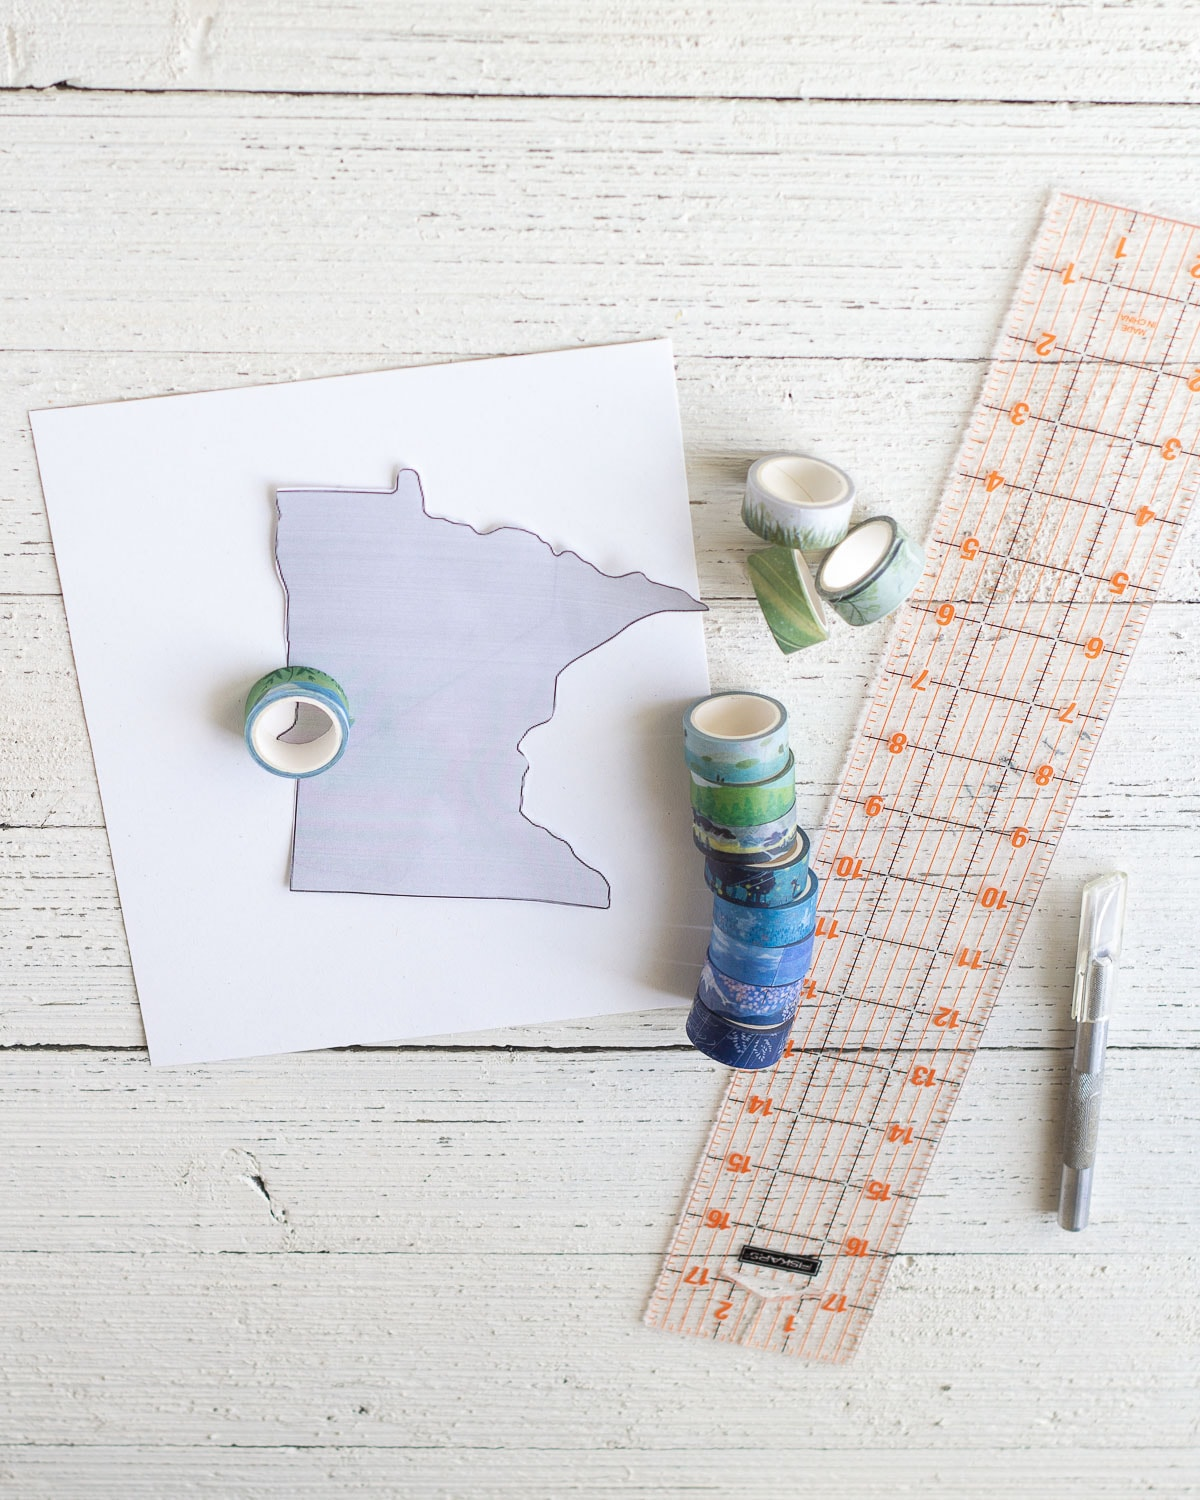 A ruler, washi tape, craft knife, cardstock, and a template of the state of Minnesota.